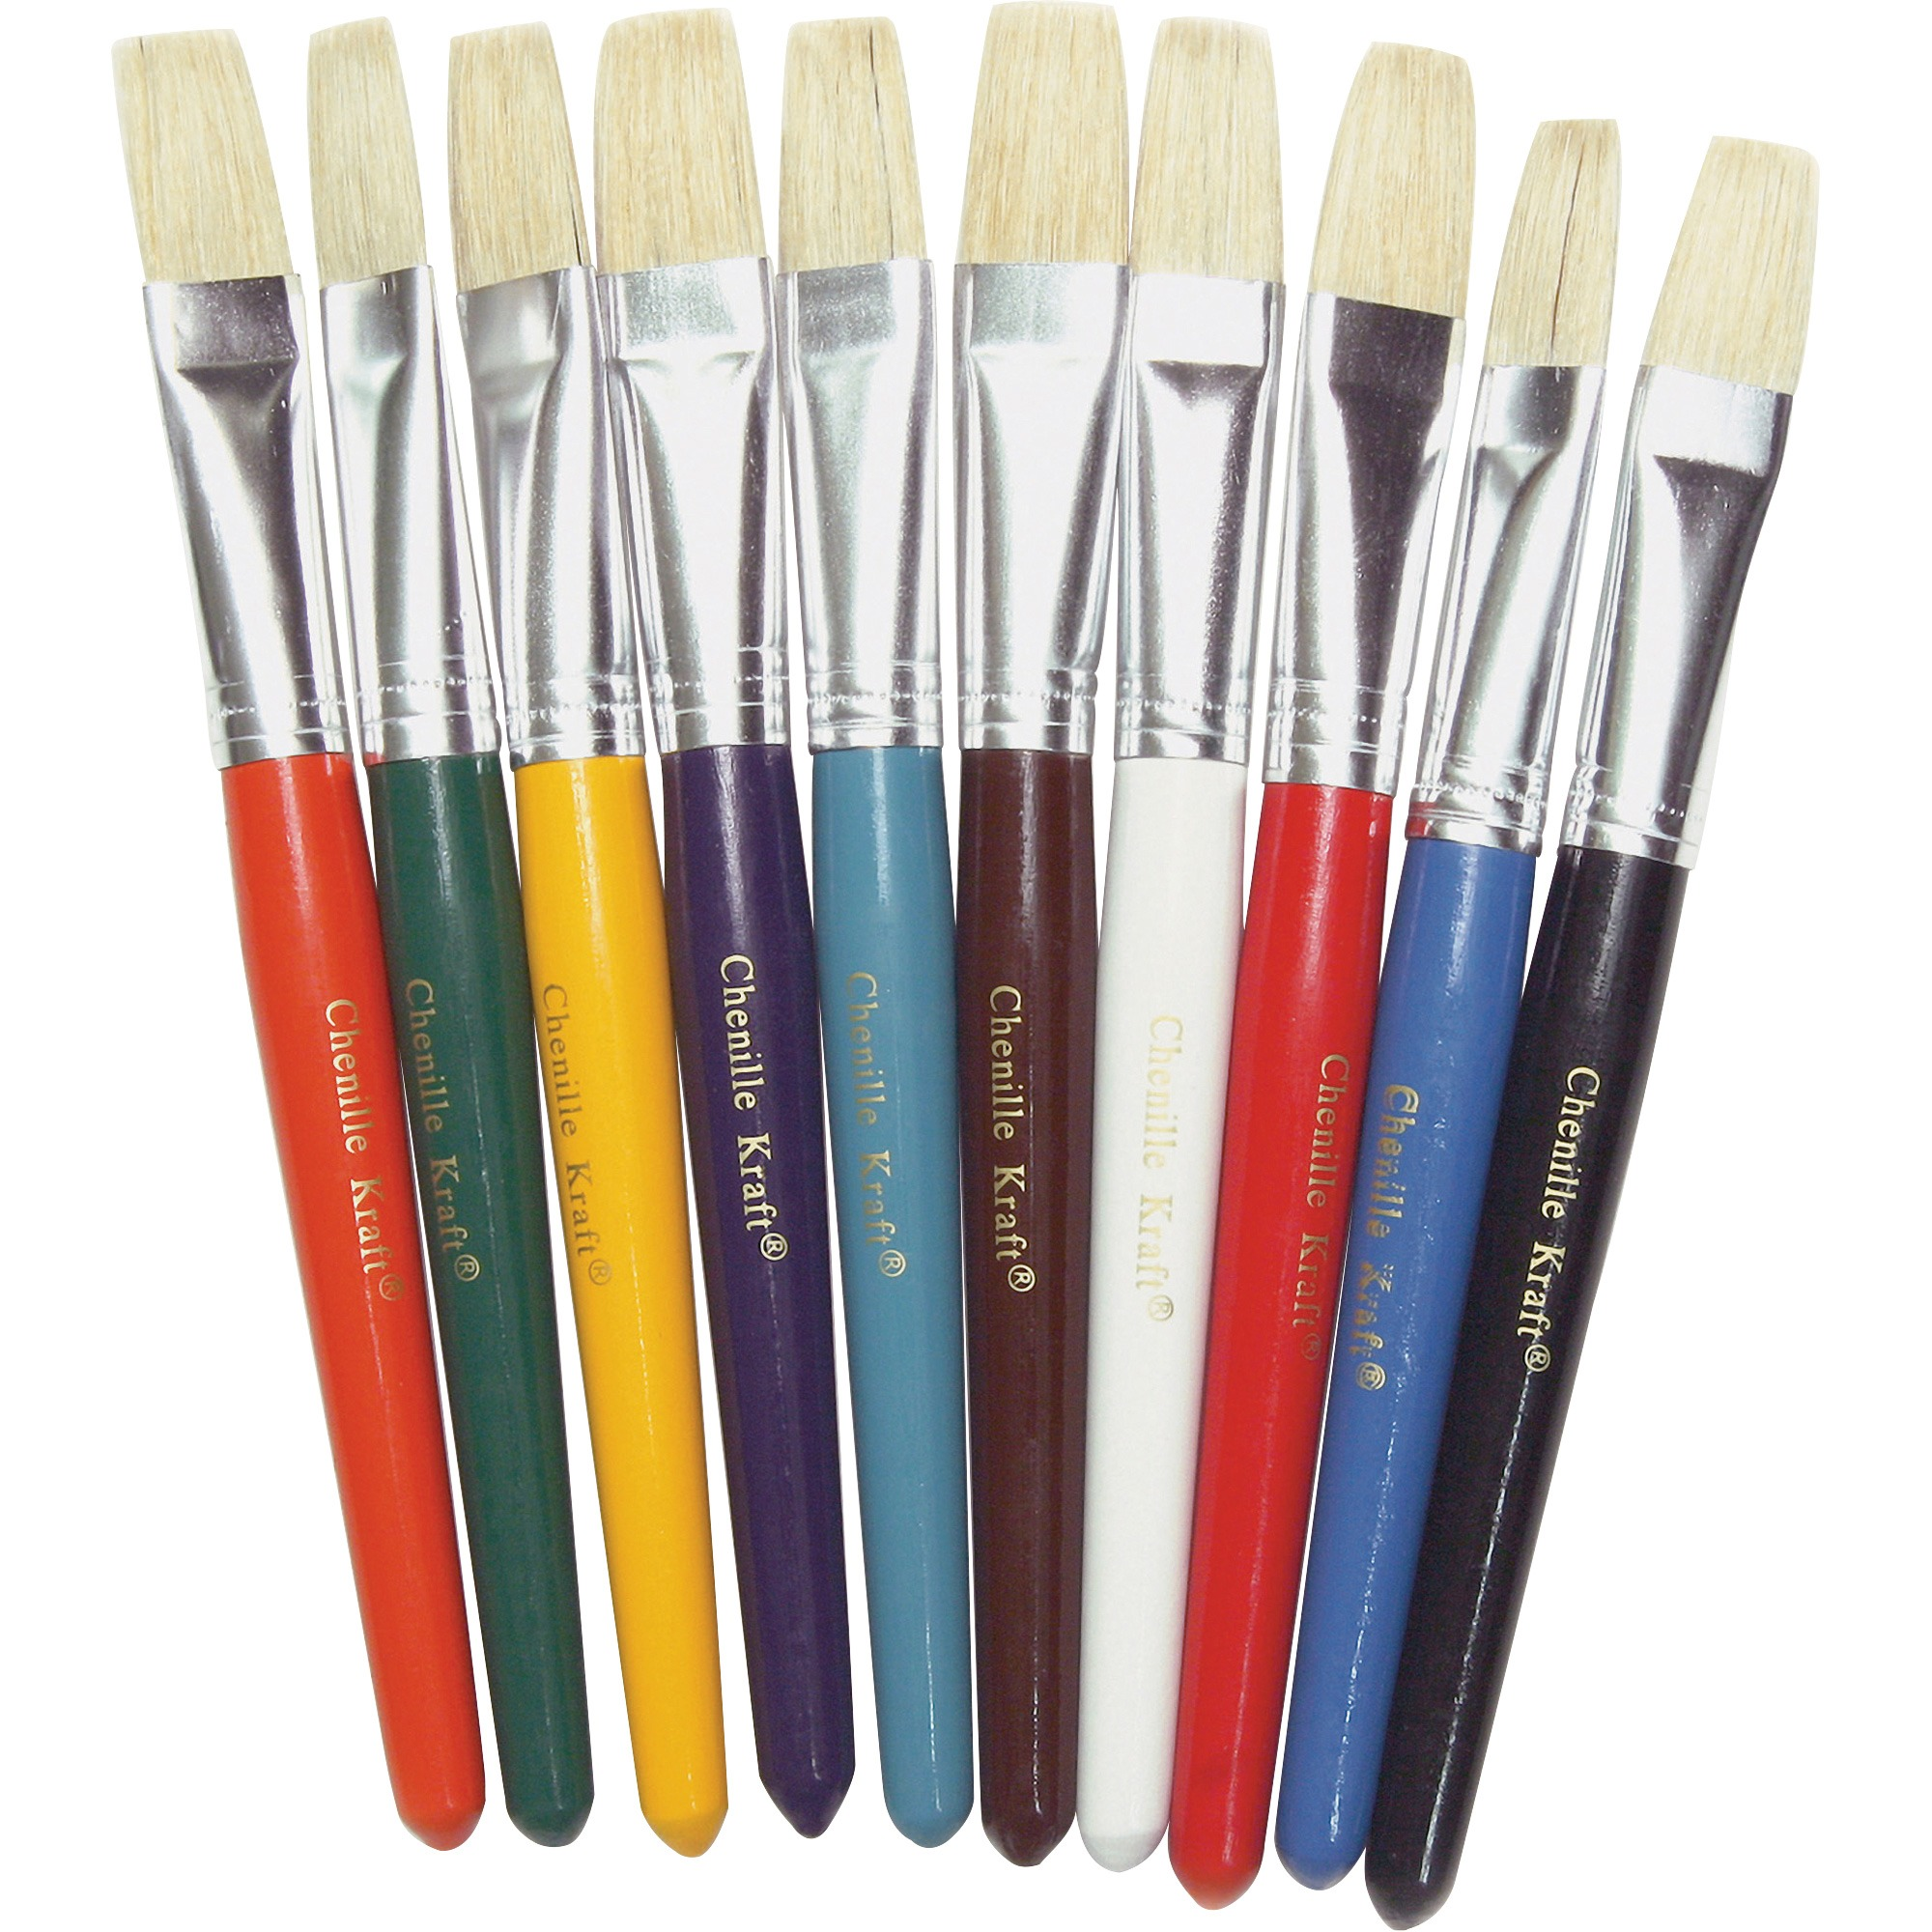 Creativity Street, CKC5184, Color Coded Flat Stubby Brushes, 10 / Set, Assorted,Yellow,Blue,Green,Orange,Brown,White,Turquoise,Black,Purple